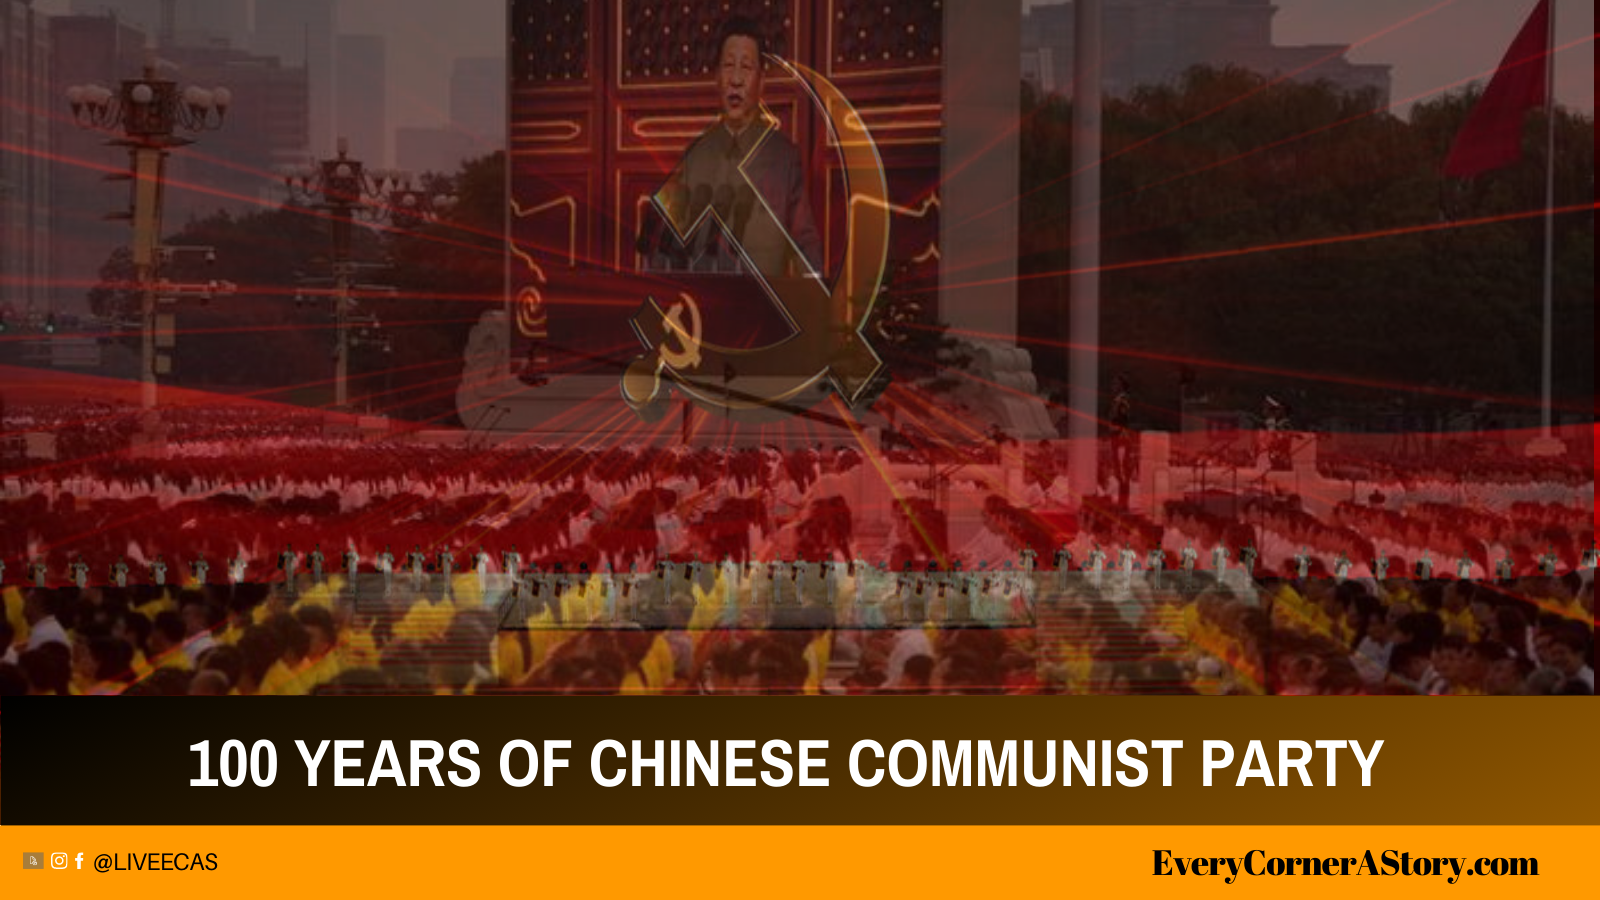 100 Years of CCP 'Great rejuvenation' of China is 'Irreversible', President Xi Jinping claims Modernity and Prosperity